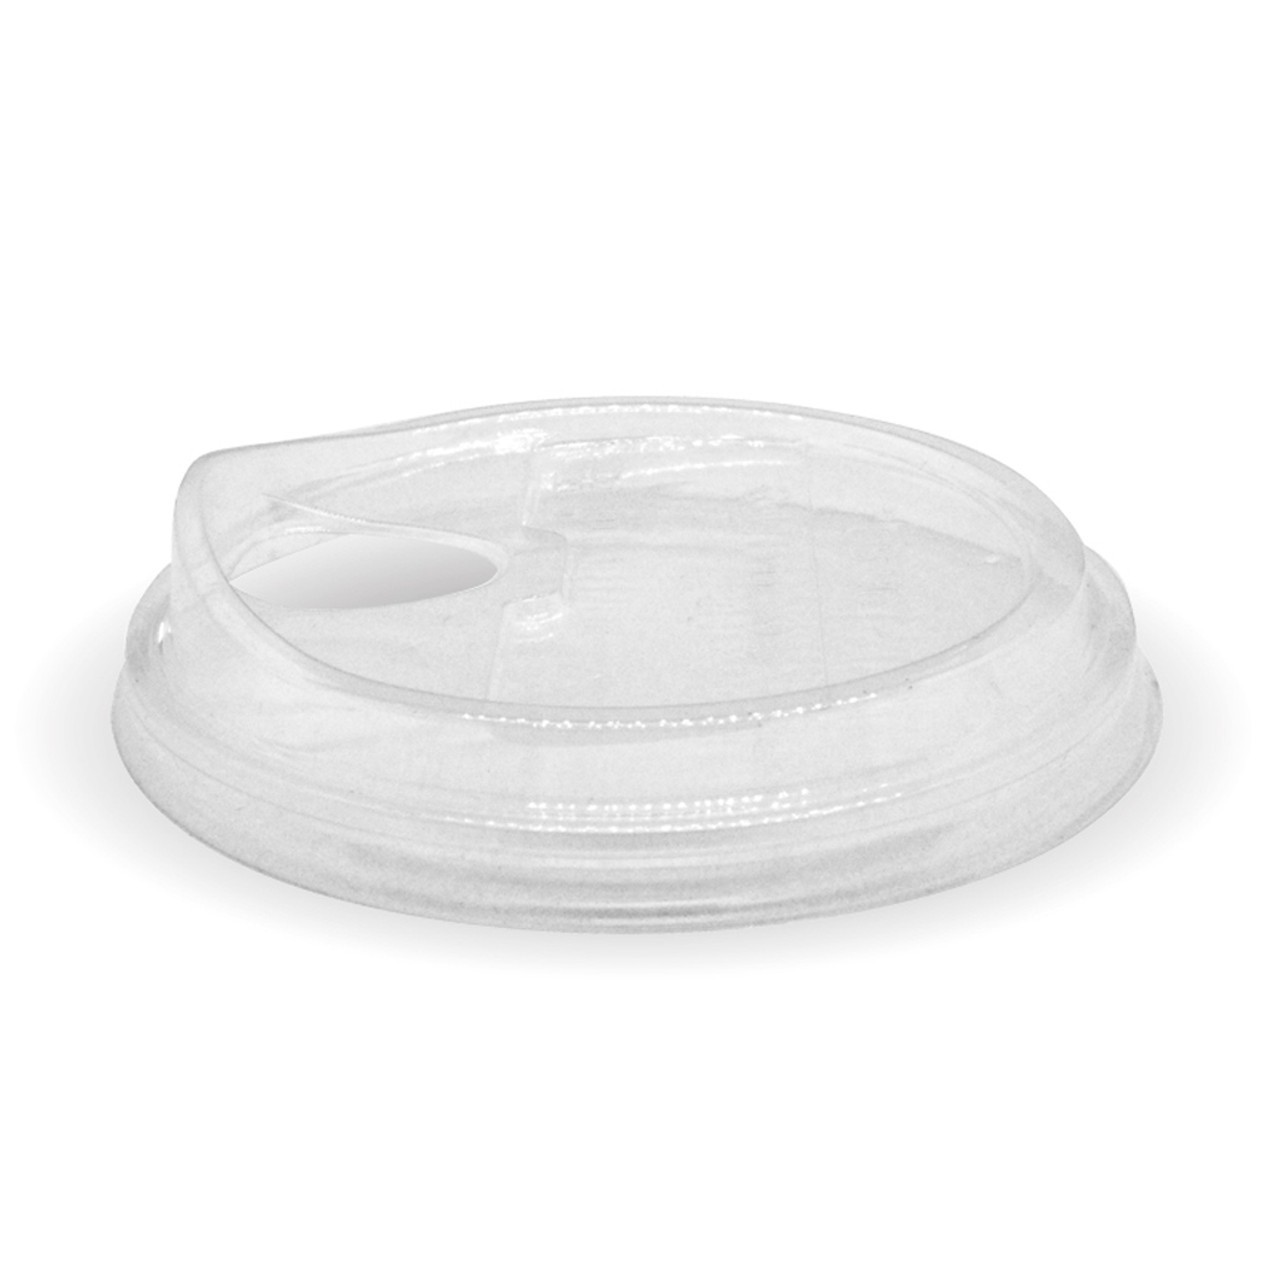 Sip Lid for EP 96mm Cold Cups (new)